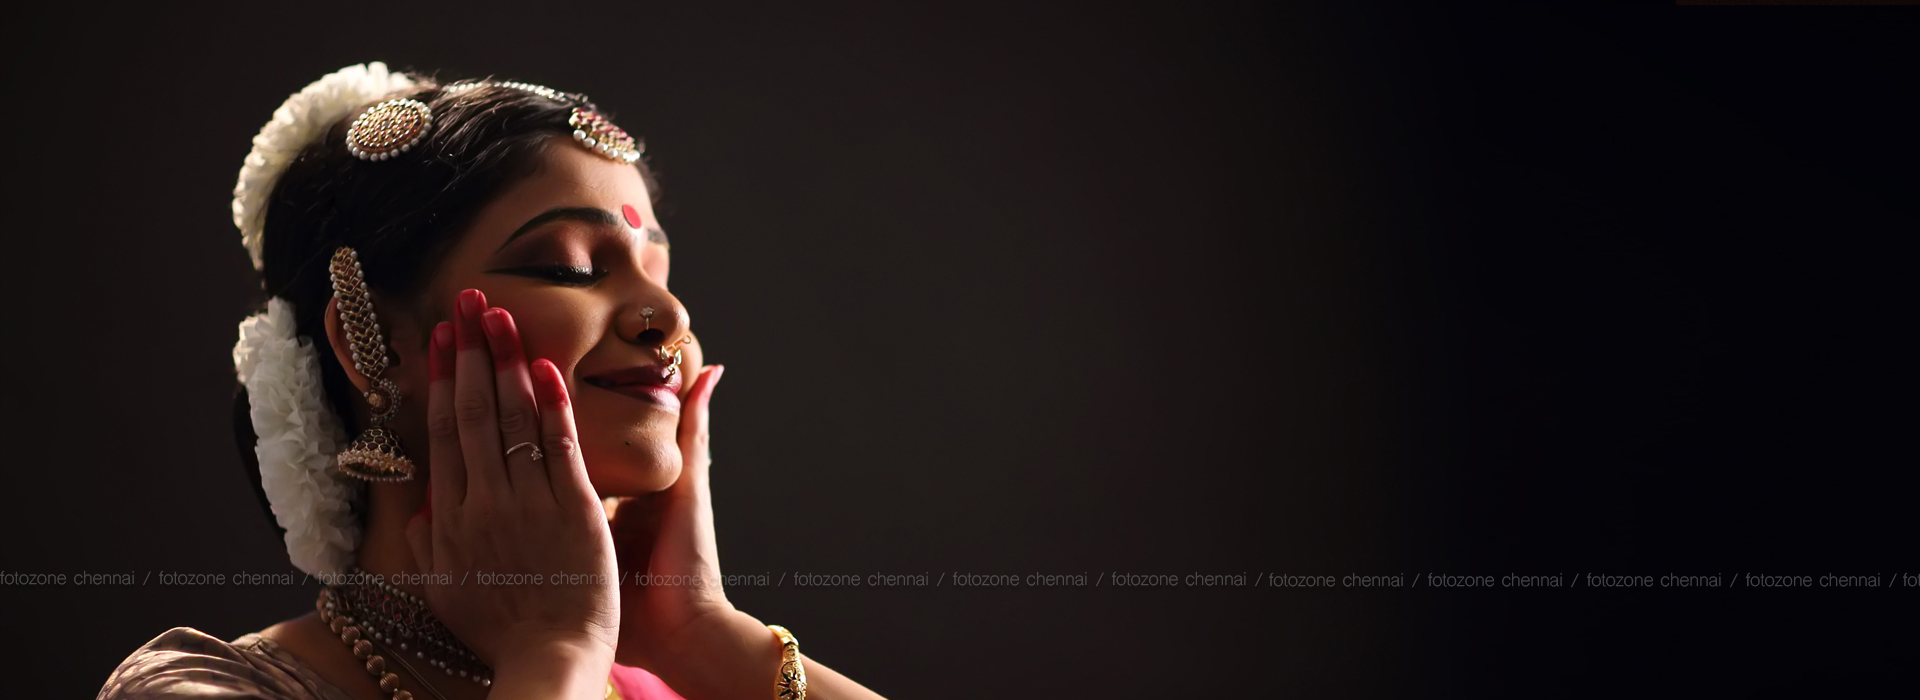 Bharatanatyam Dancing photo